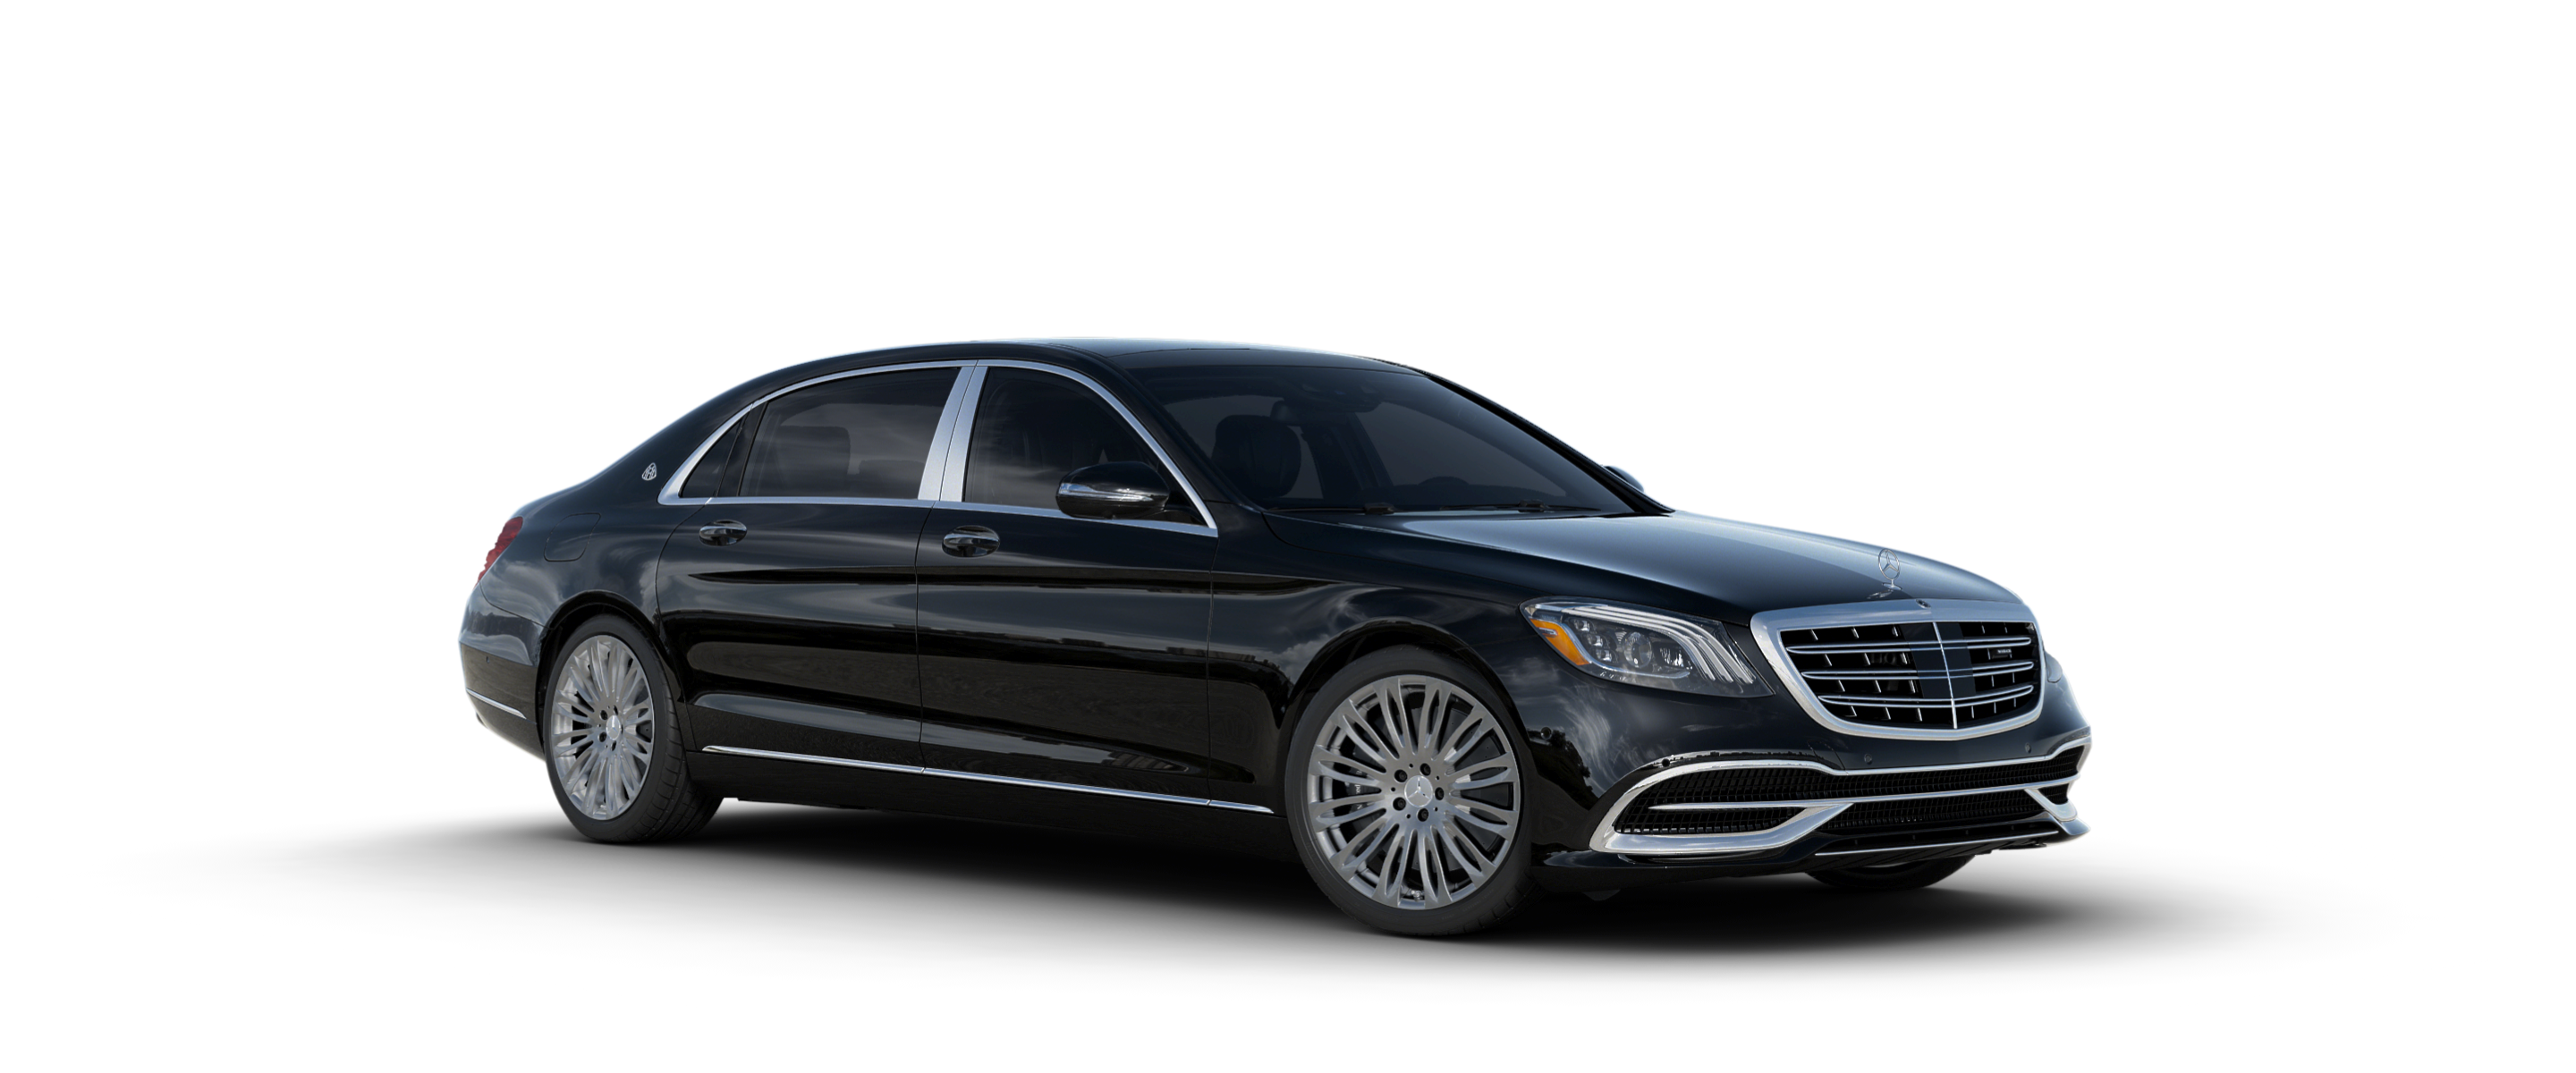 deals offers articles img mercedes june benz carsdirect best lease